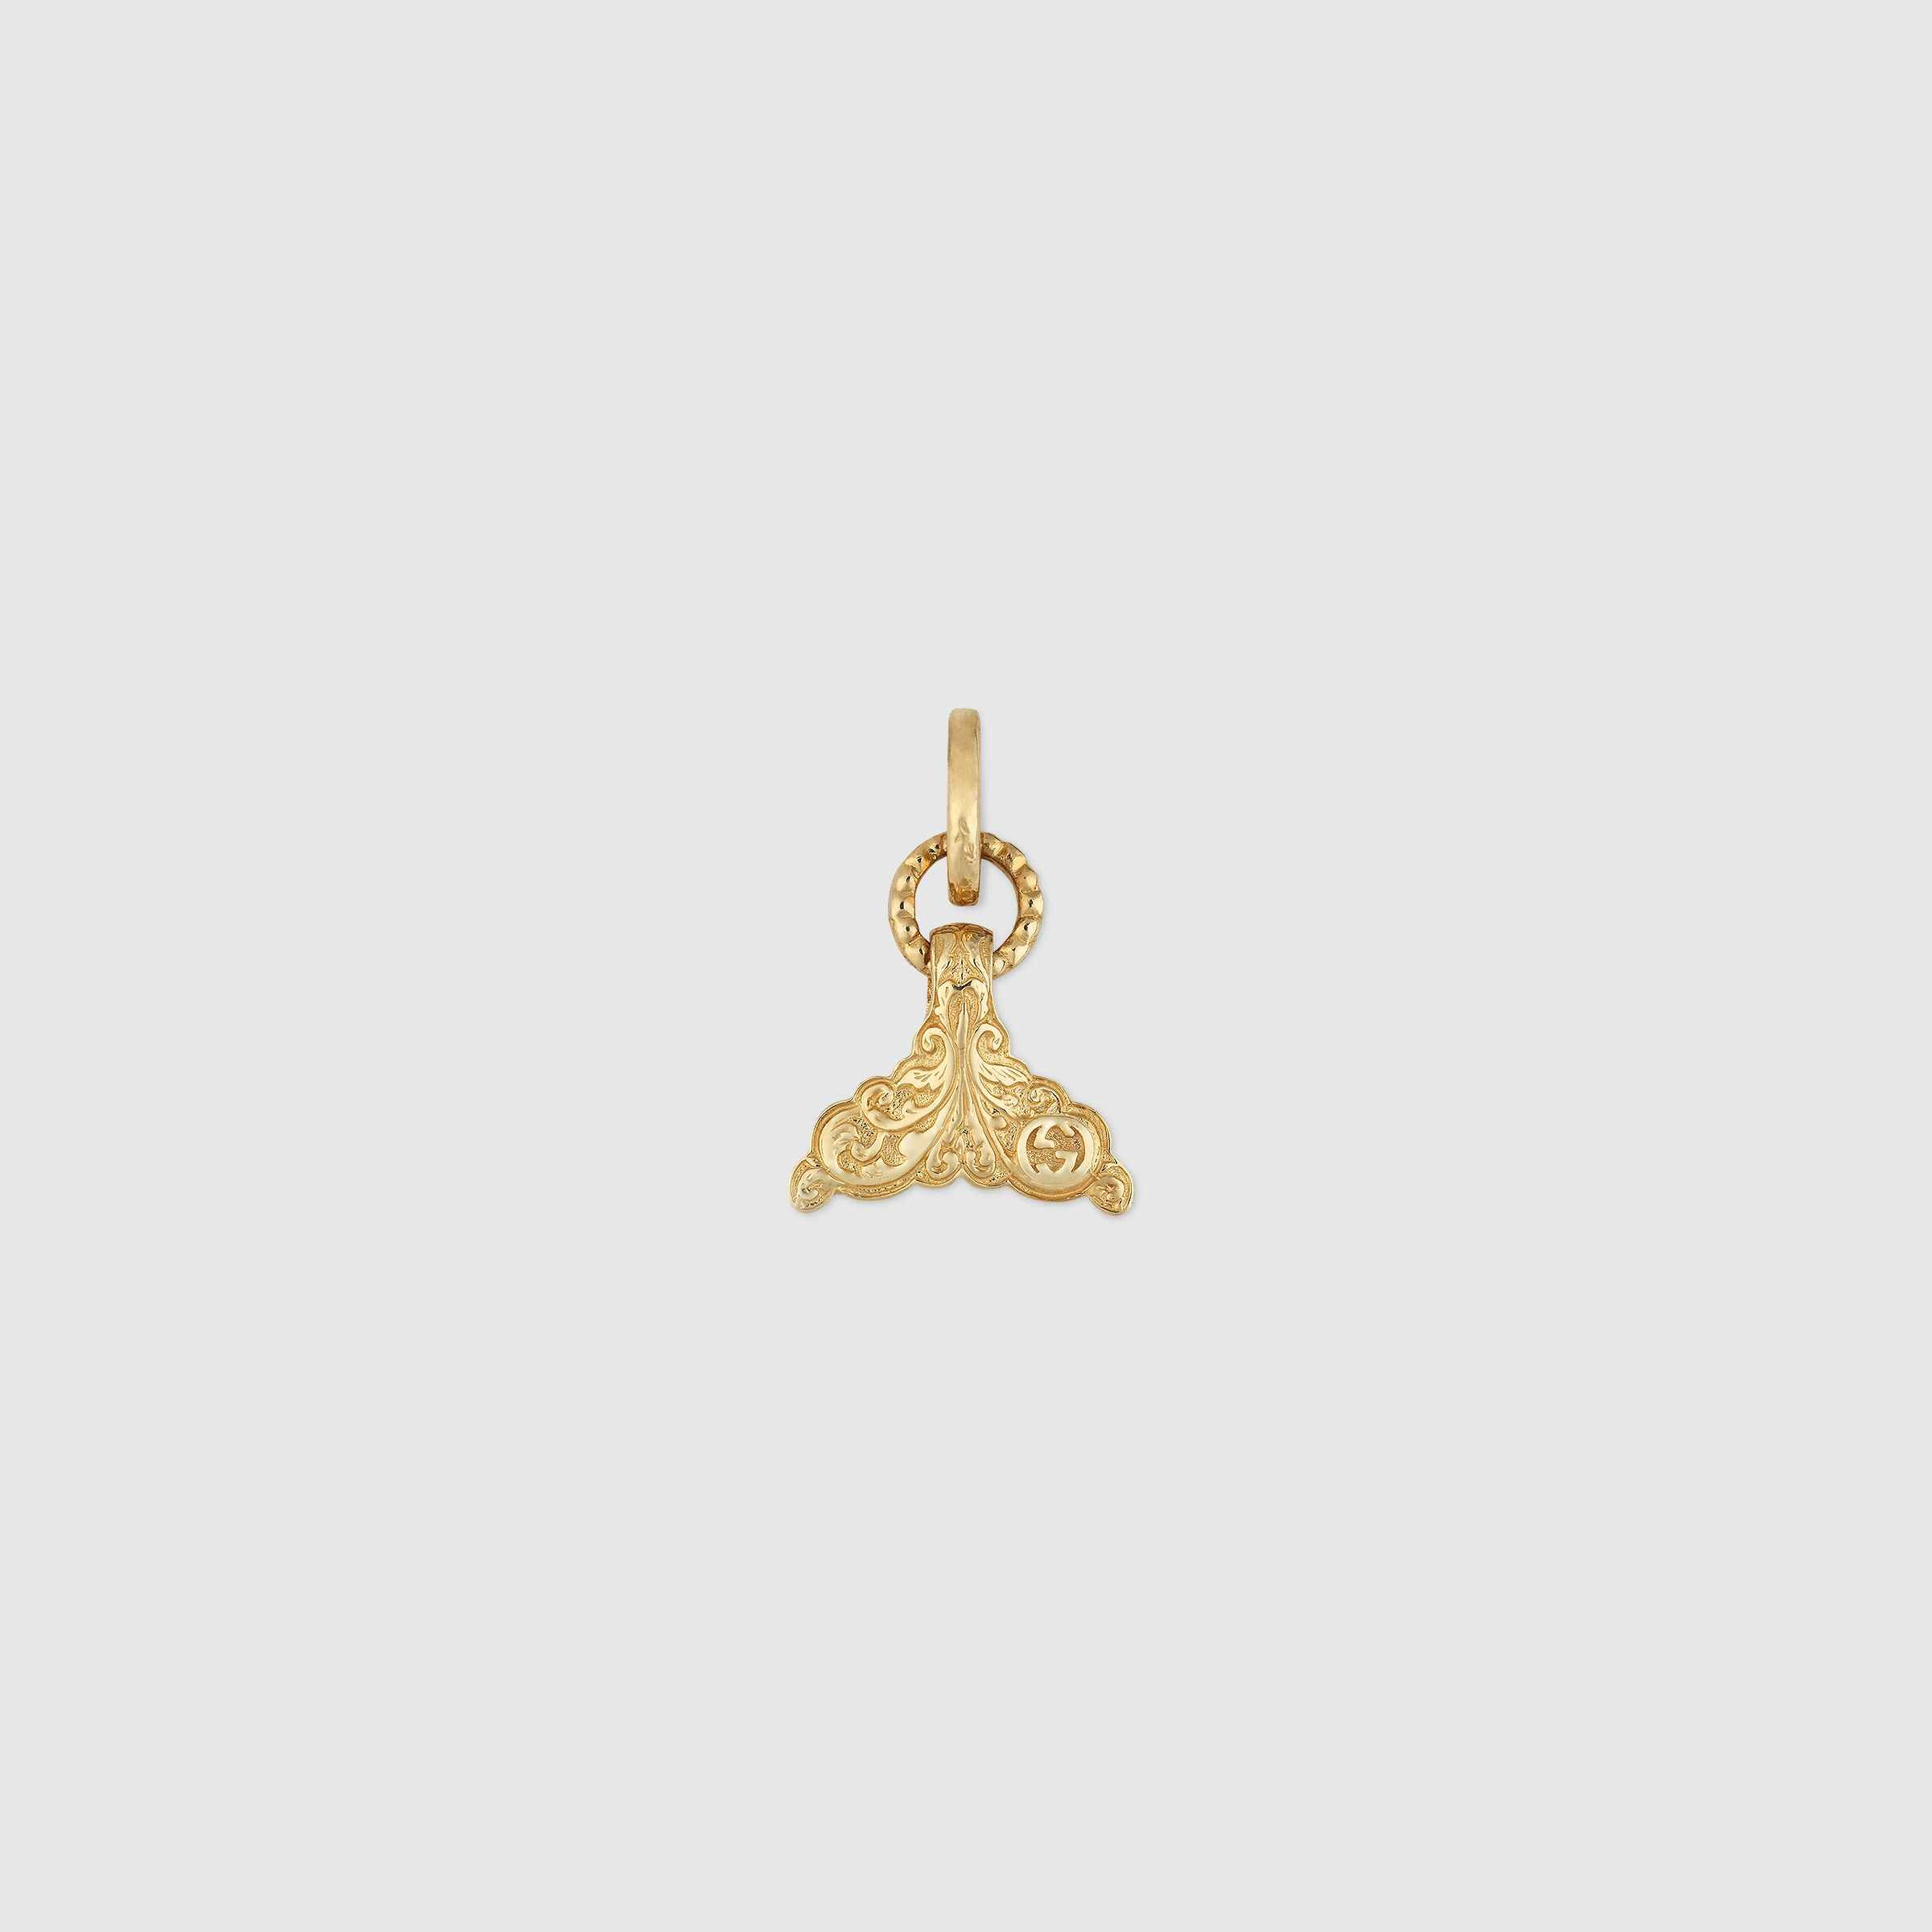 18b1d370ca Shop the Tail fin charm in yellow gold by Gucci. A fin-shaped charm ...